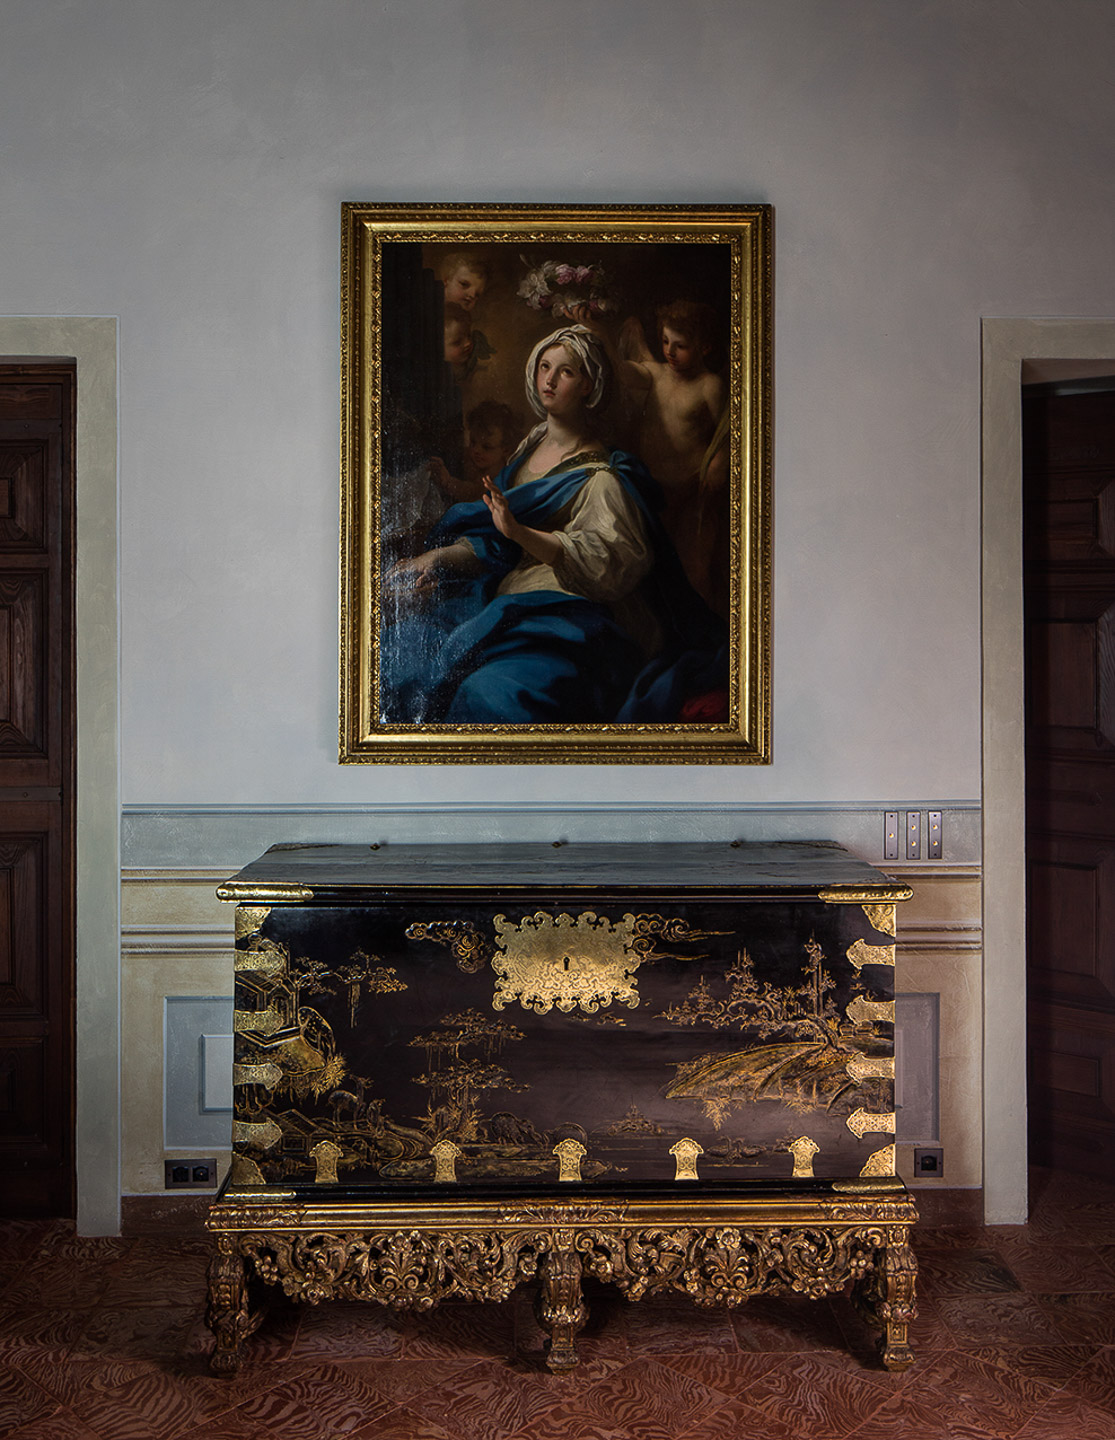 Villa Balbiano luxury exclusive property villa private residence Durini best interiors service blue suite bedroom Coromandel Chinese chest Saint Cecilia painting